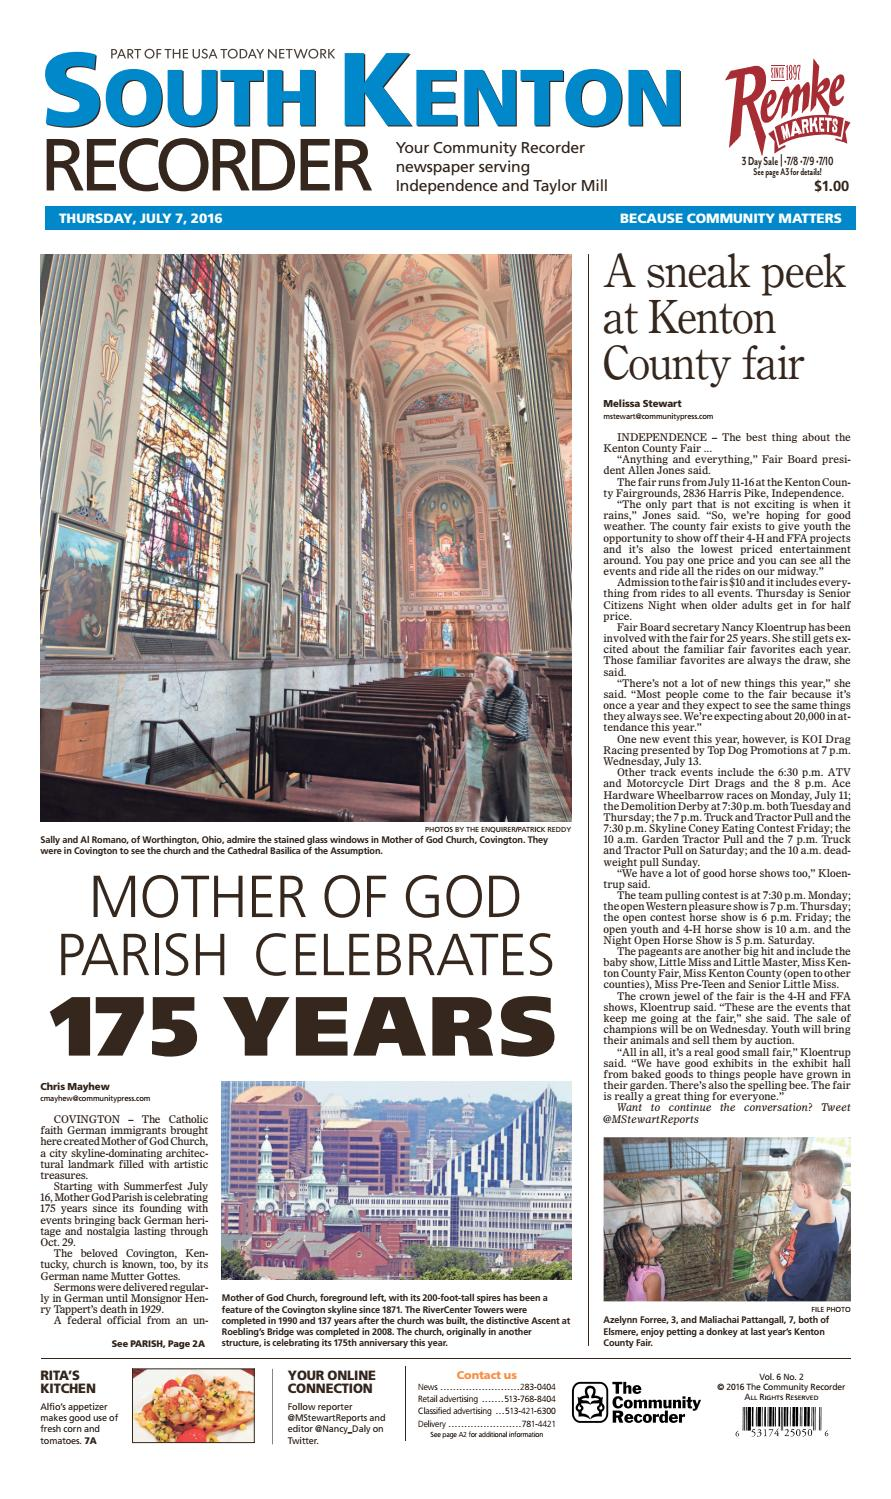 South kenton recorder 070716 by Enquirer Media - issuu